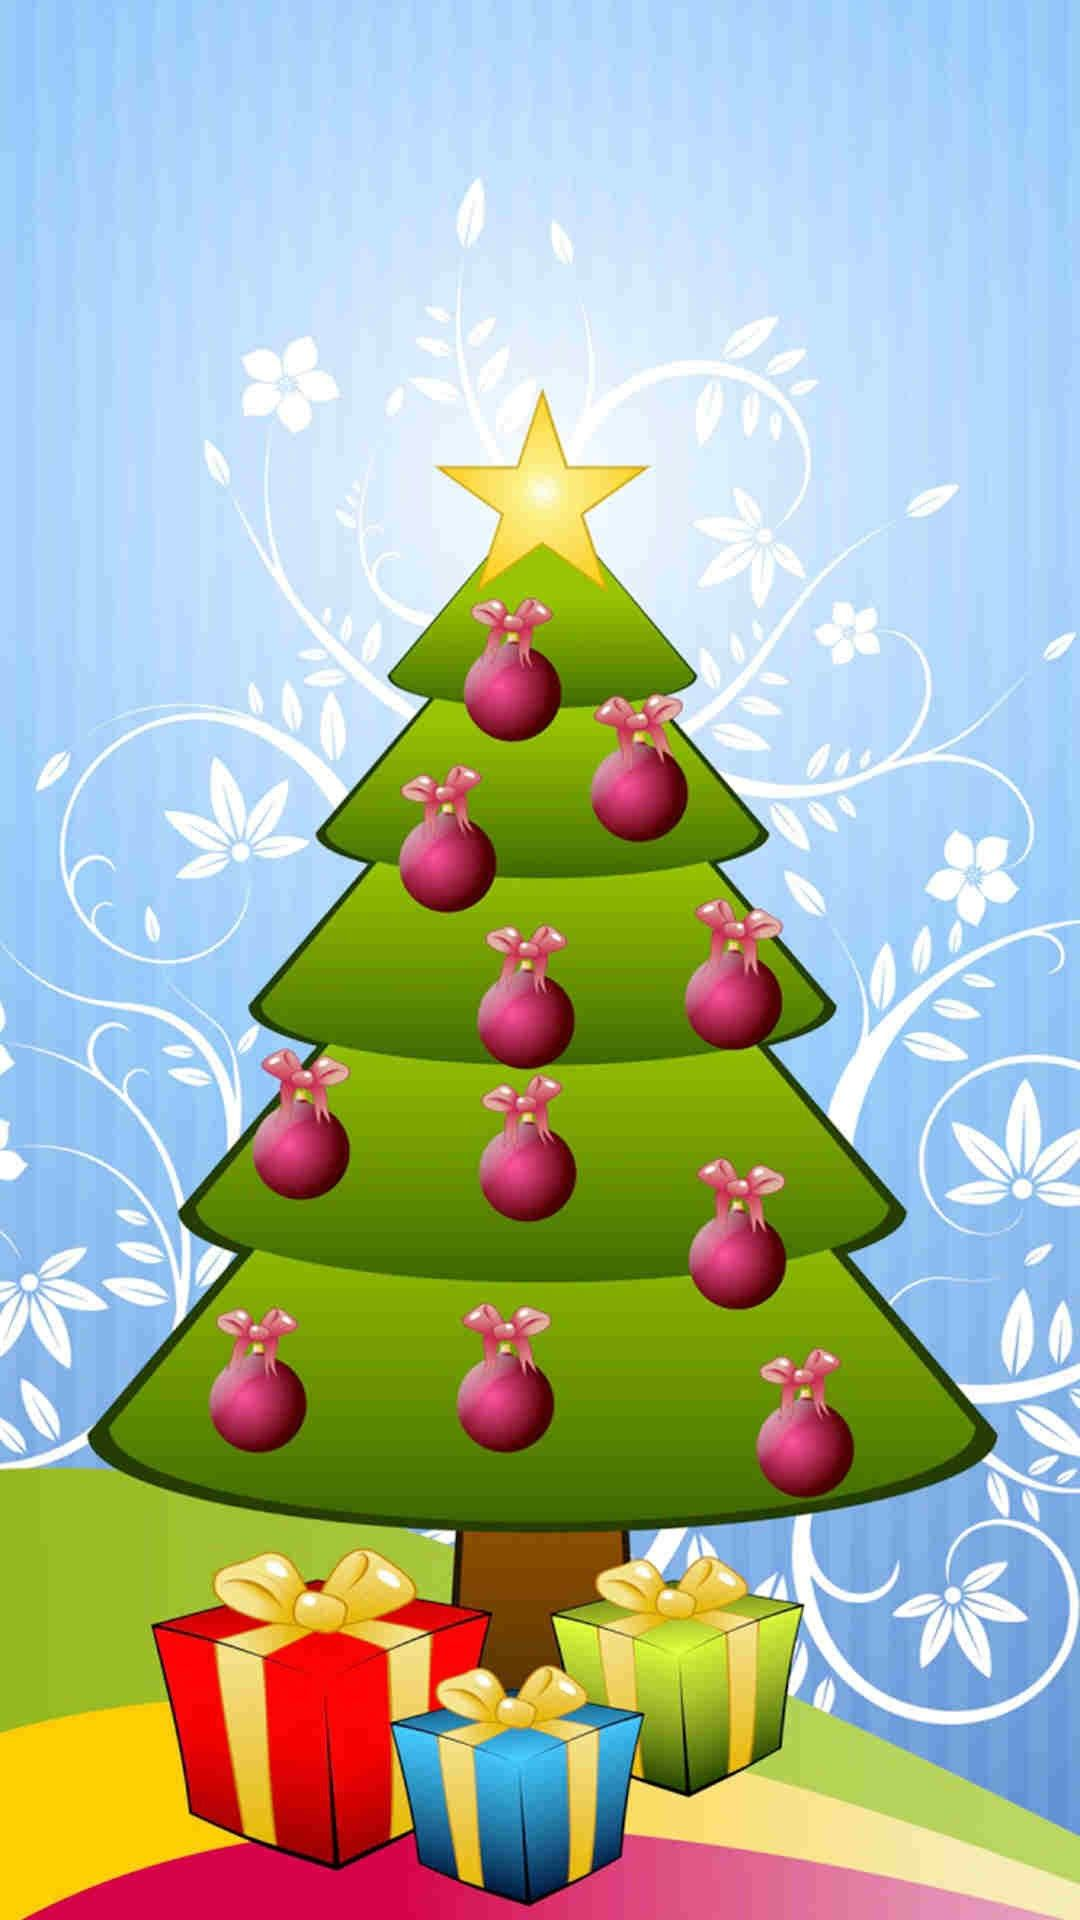 2015 Winter Most Stylish Christmas Tree Iphone 6 Plus Wallpaper Fashion Blog Cute Christmas Tree Christmas Tree Wallpaper Christmas Lockscreen